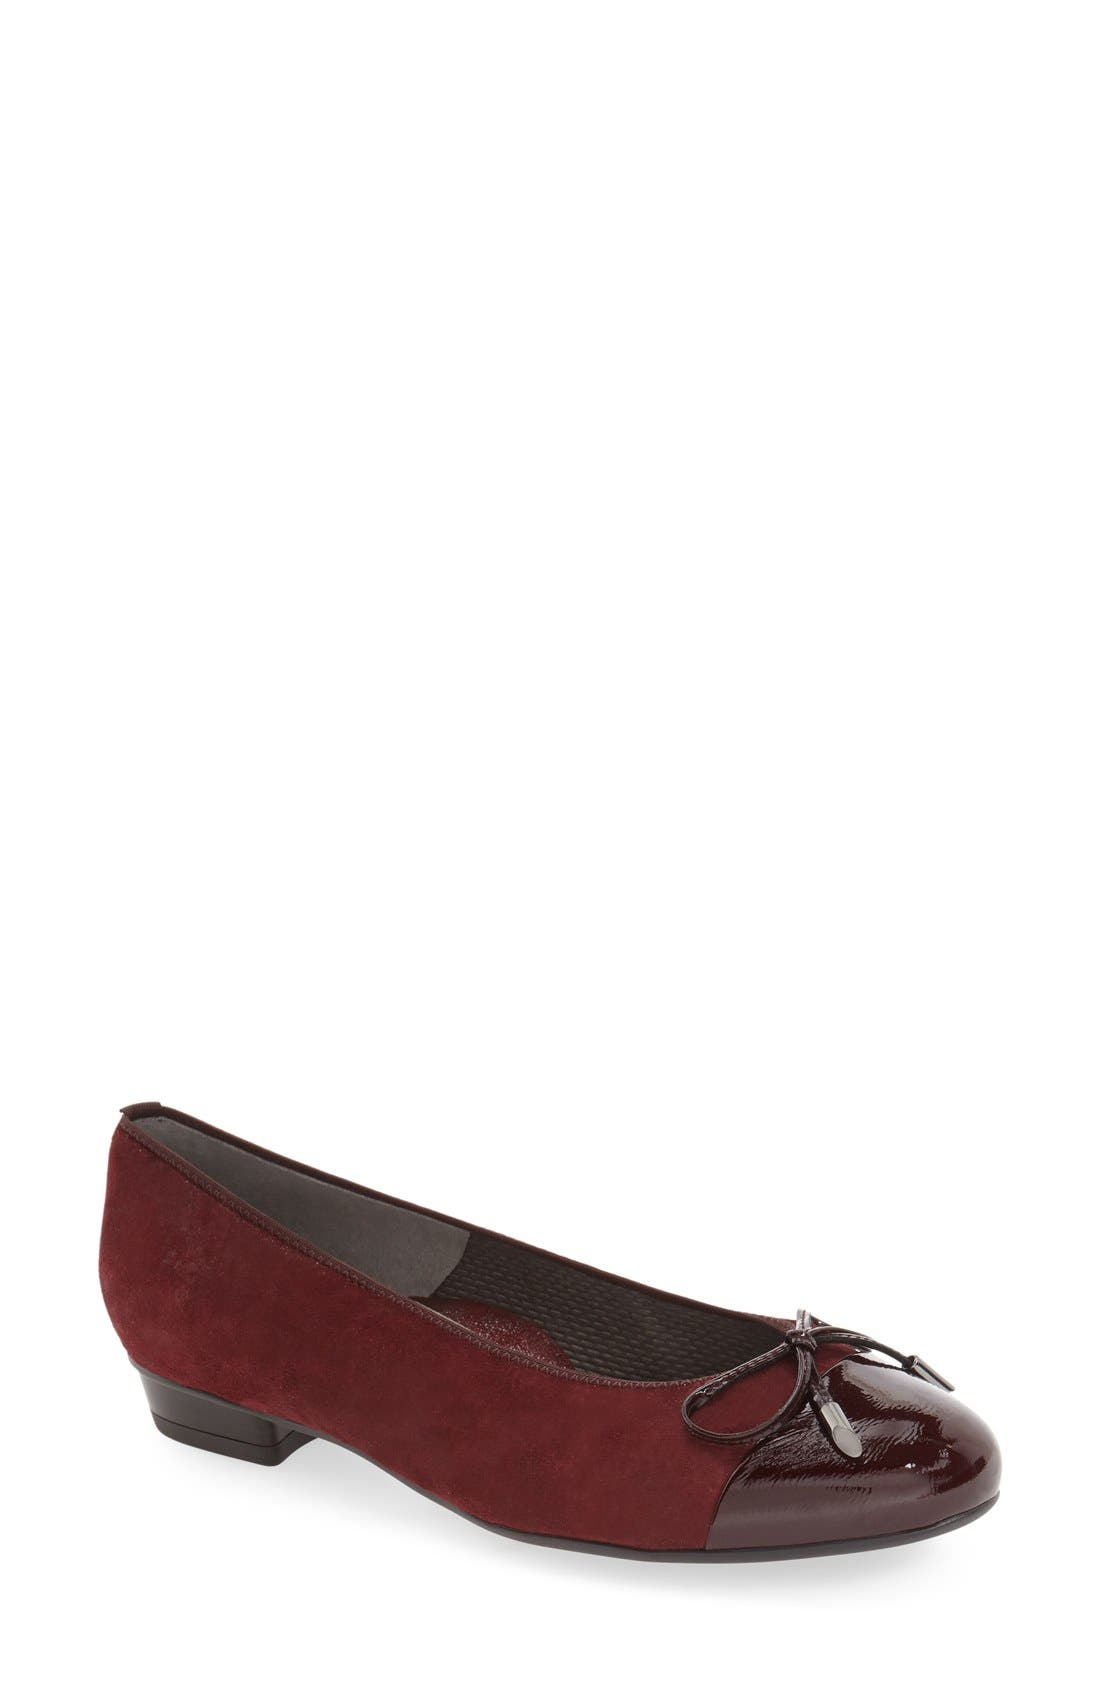 'Betty' Cap Toe Flat,                             Main thumbnail 1, color,                             BURGUNDY PATENT LEATHER